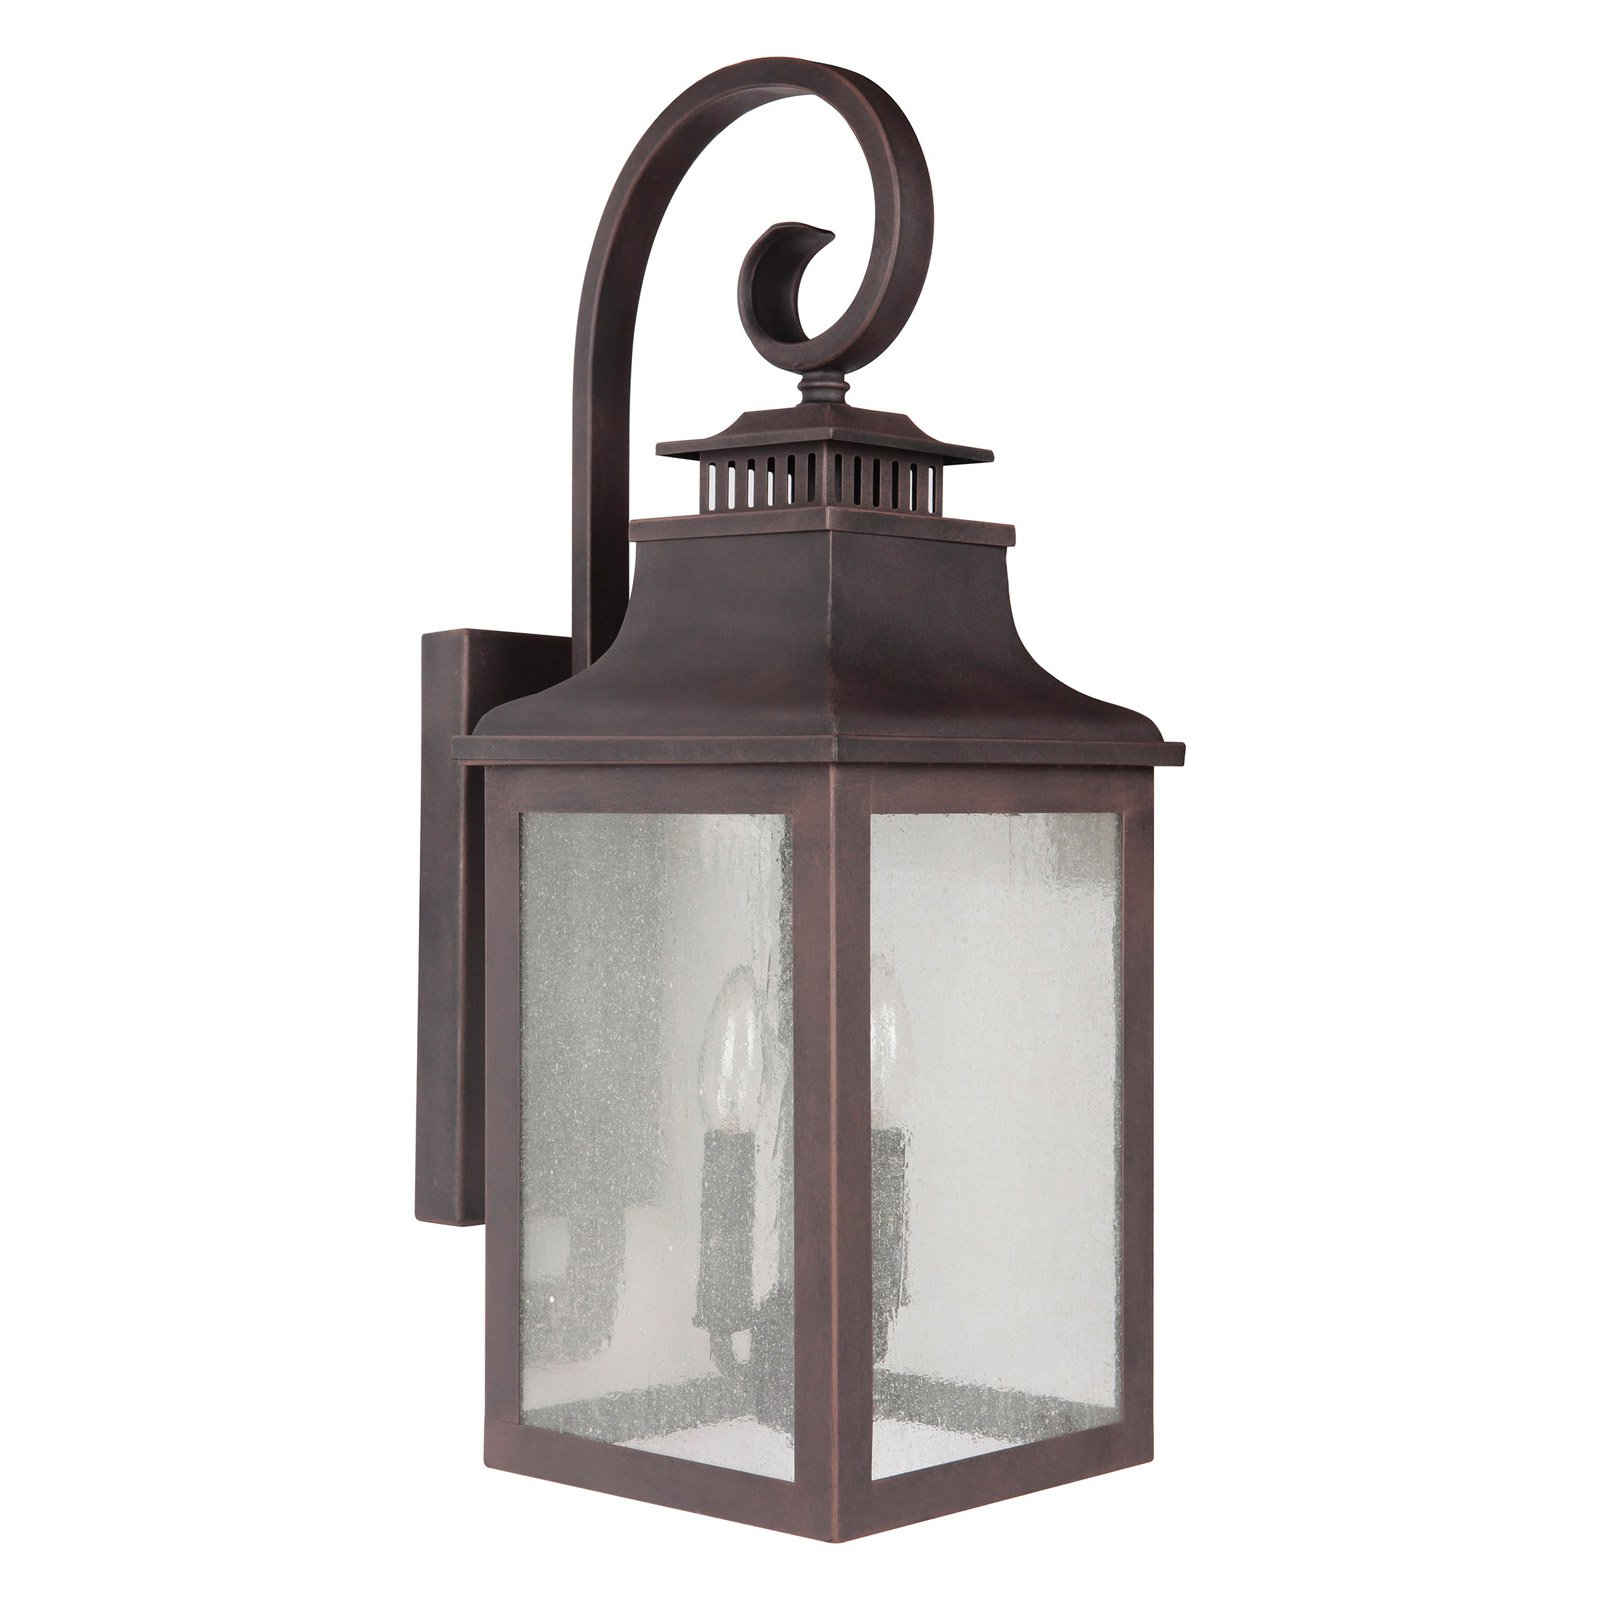 Y Decor EL2283RT Modern Transitional Traditional 2 Light Rustic Bronze Exterior Outdoor Light Fixture with Clear Seedy Glass Sma